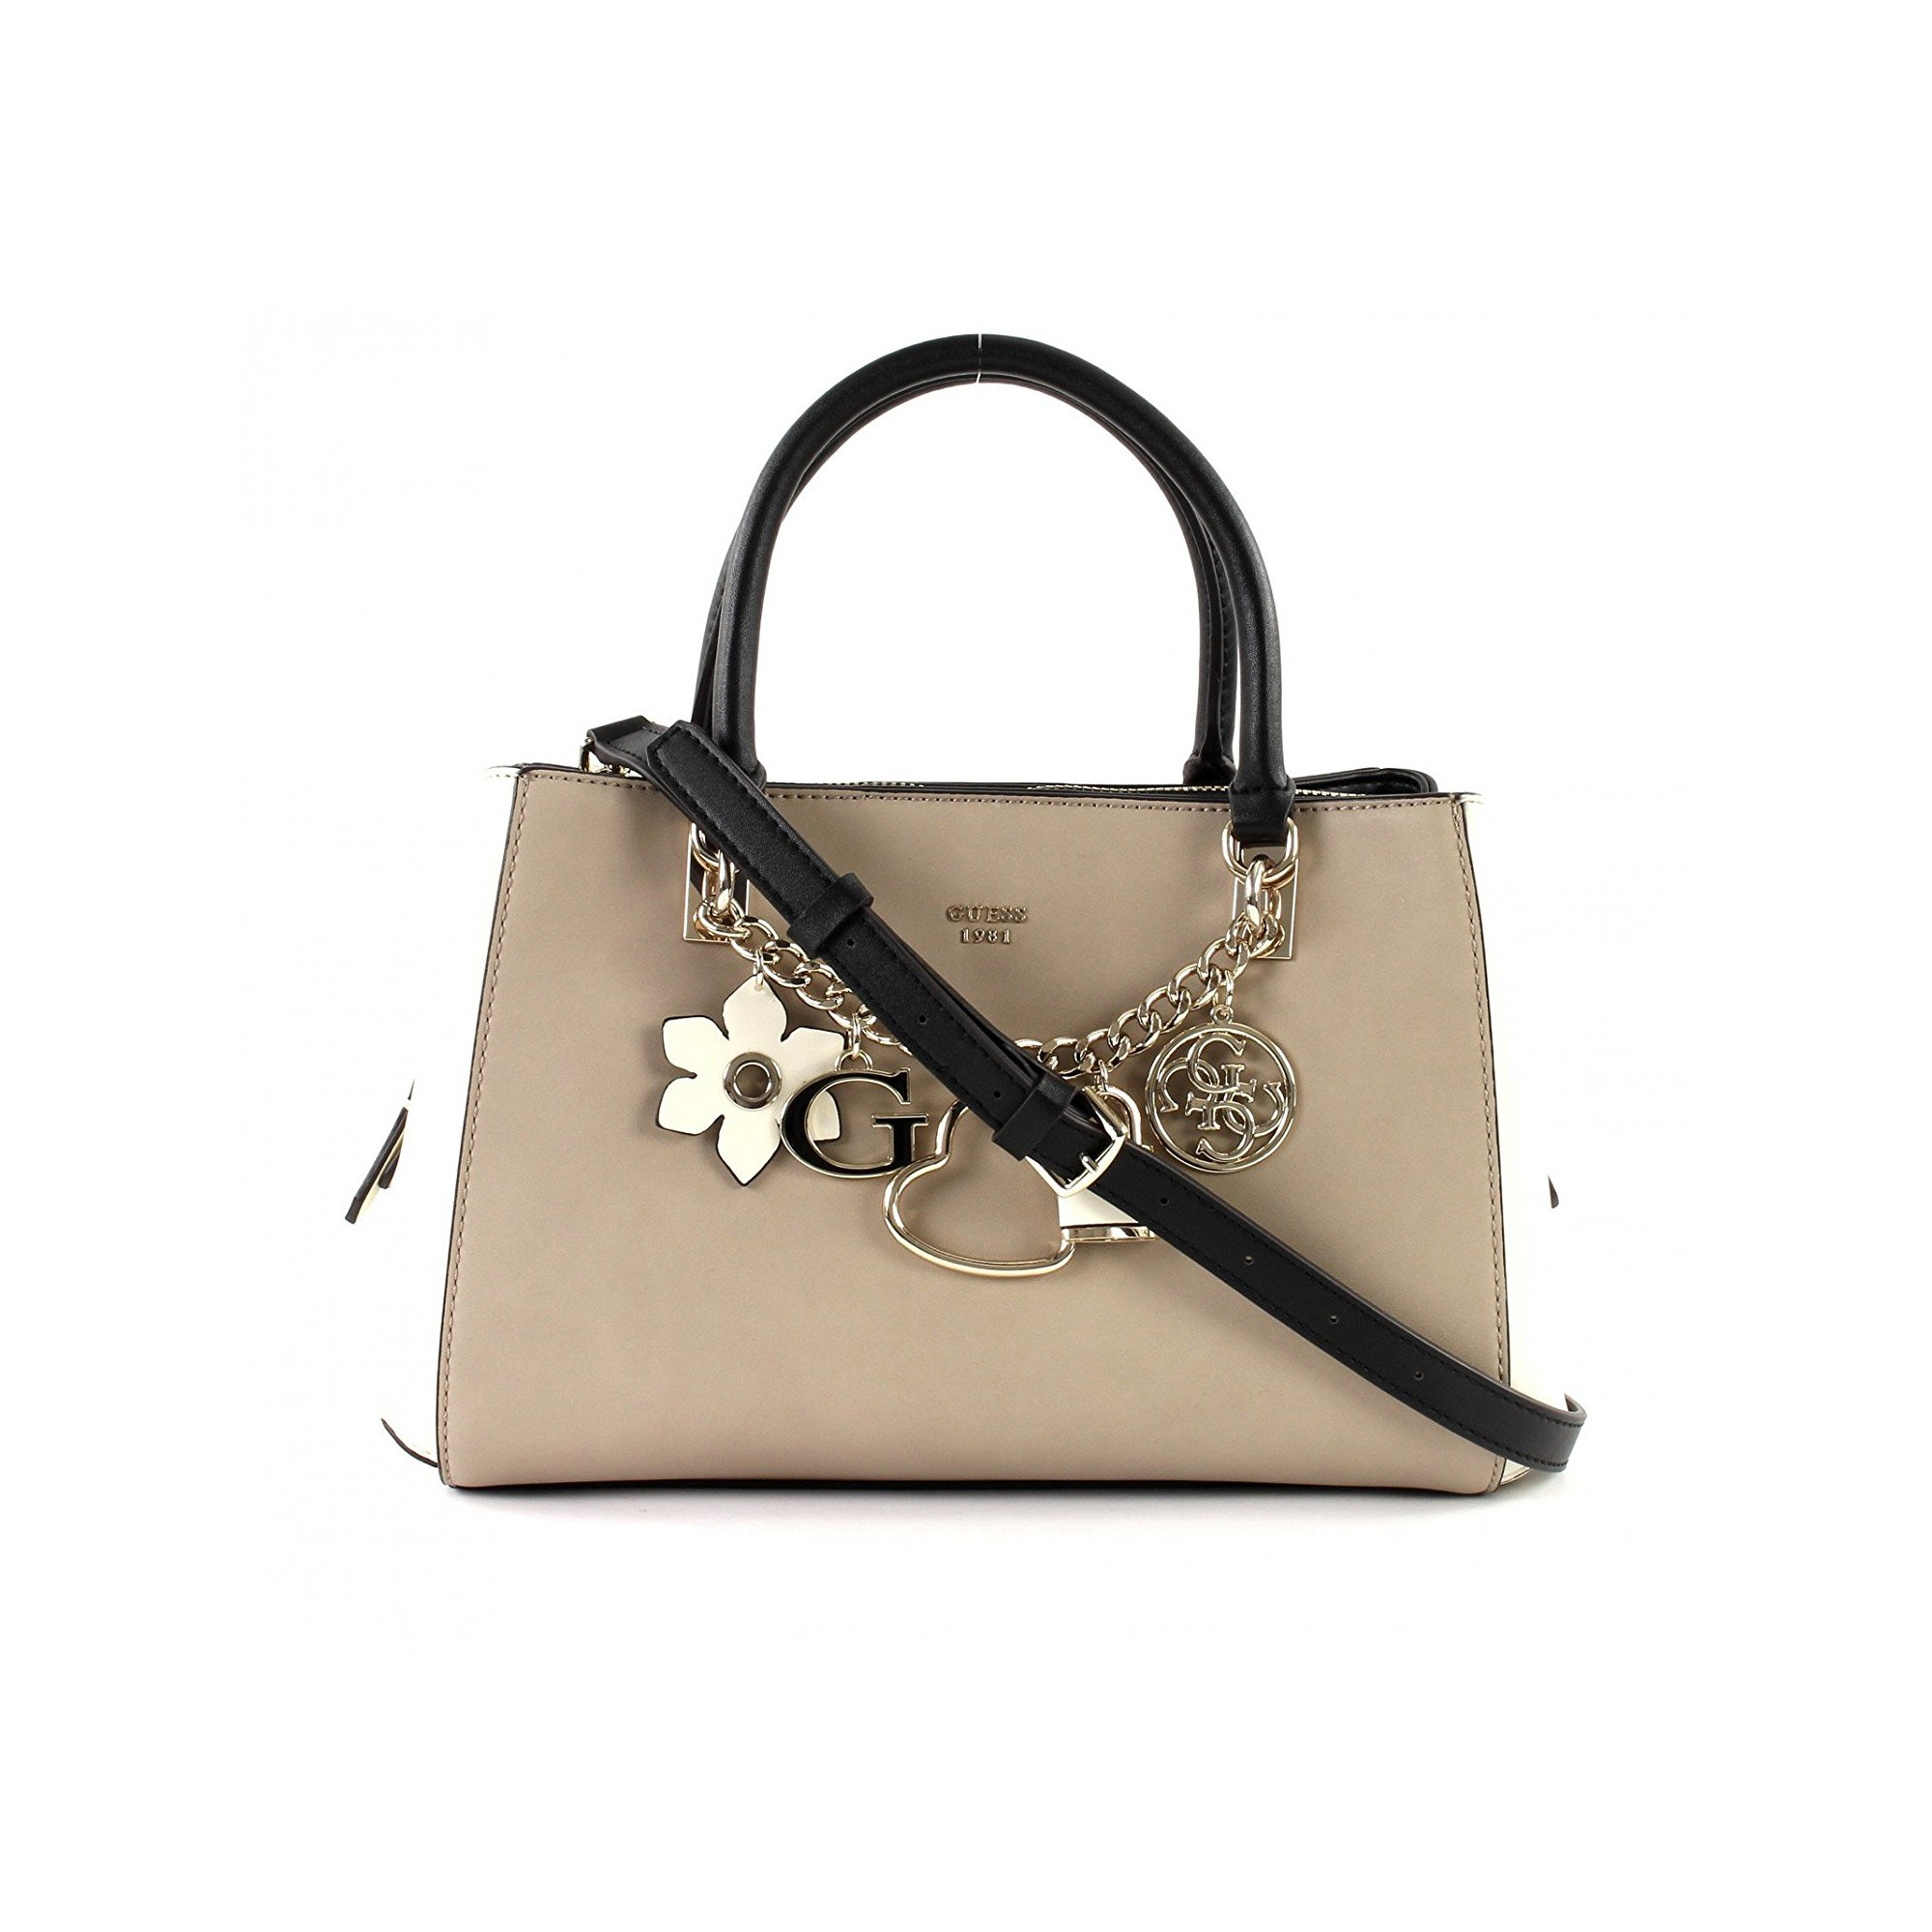 da3c70ce7e Girlfriend À Satchel Guess Sac Hadley Taupemulticolore Main 354ARLqj